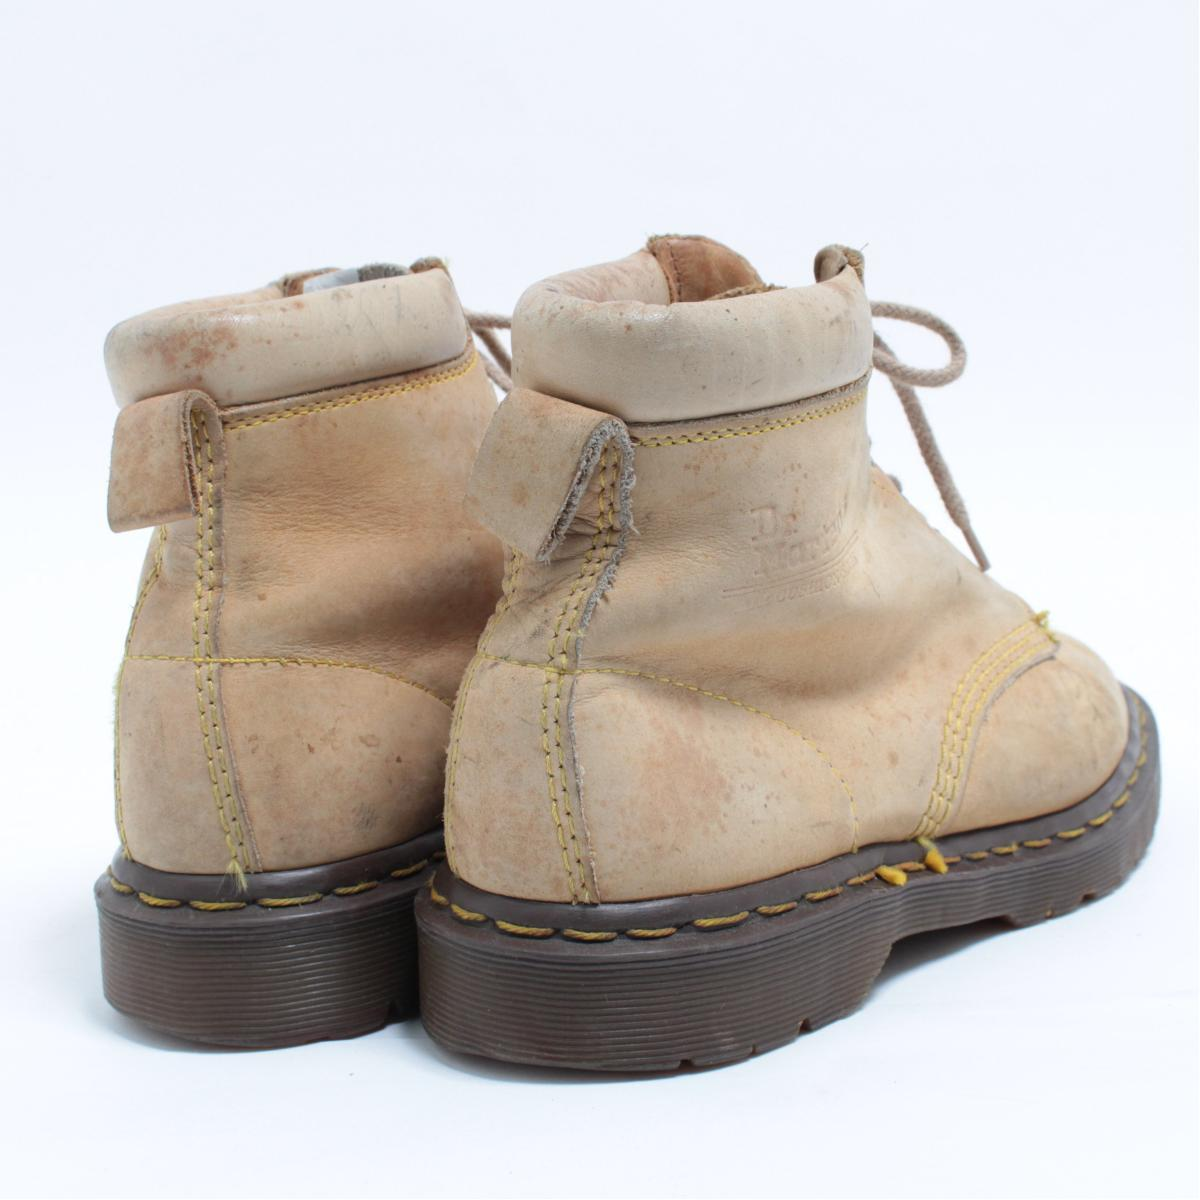 UK5.5 Lady's 24.0cm /bol4687 made in the doctor Martin Dr.Martens 6 hall boots U.K.